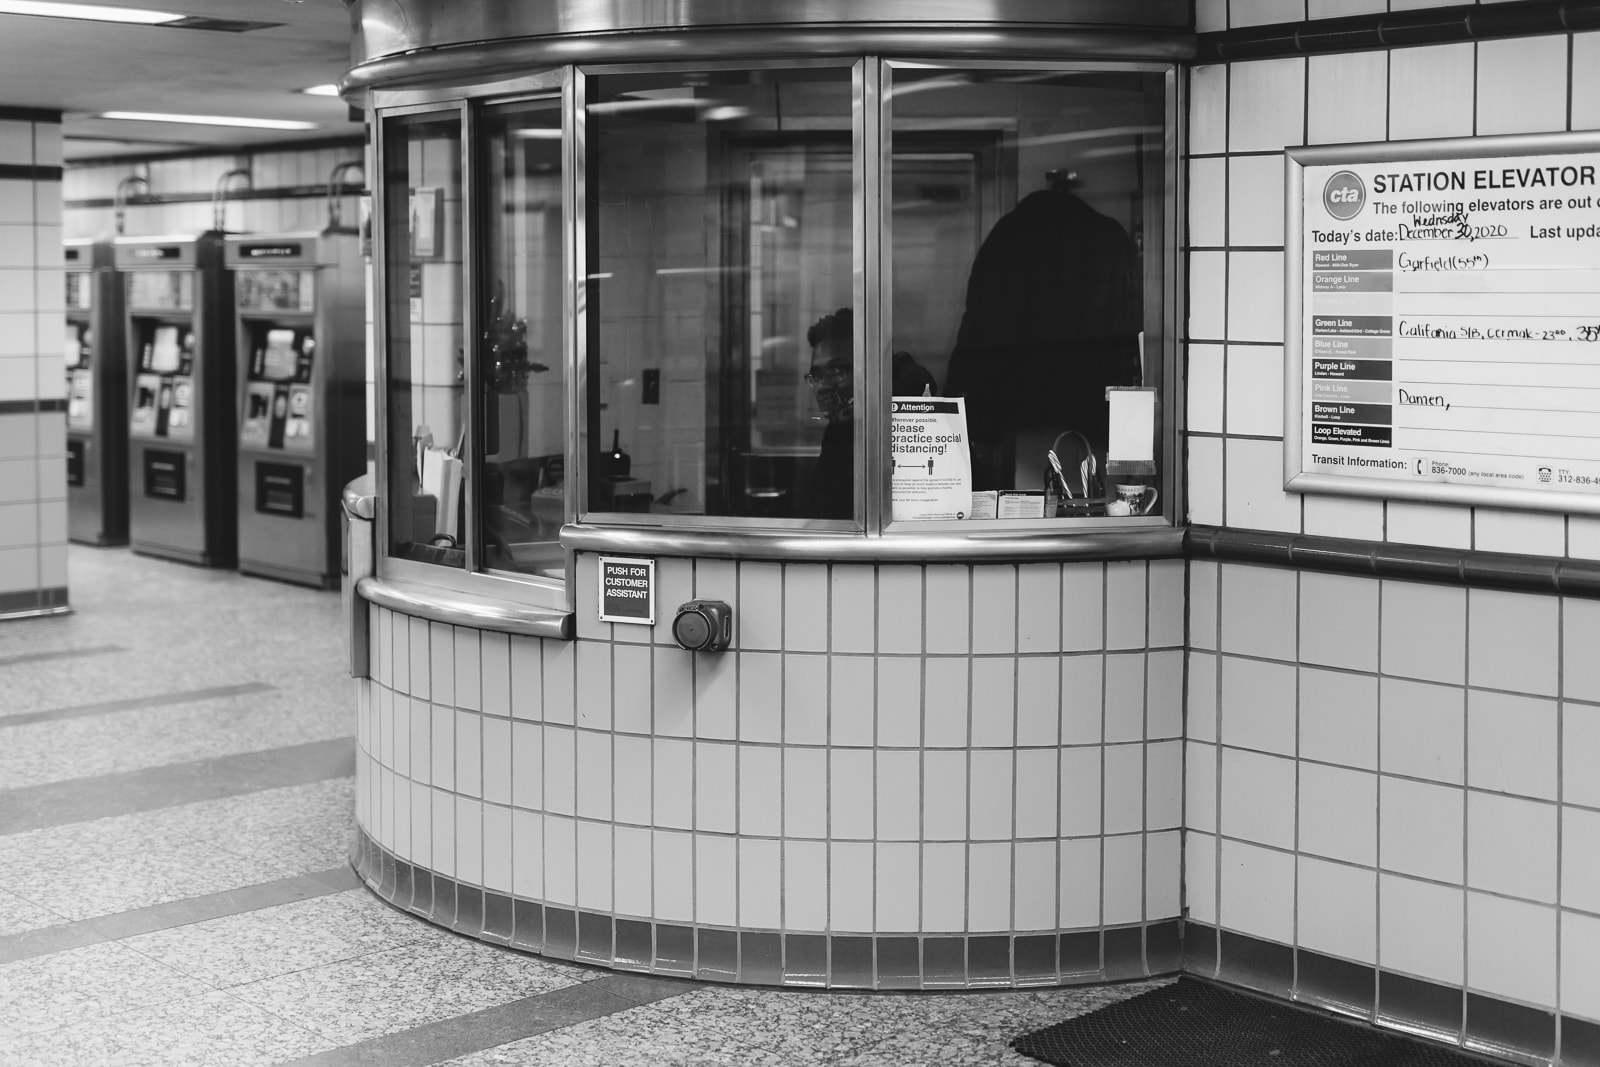 Ticket counter for the L train in Chicago